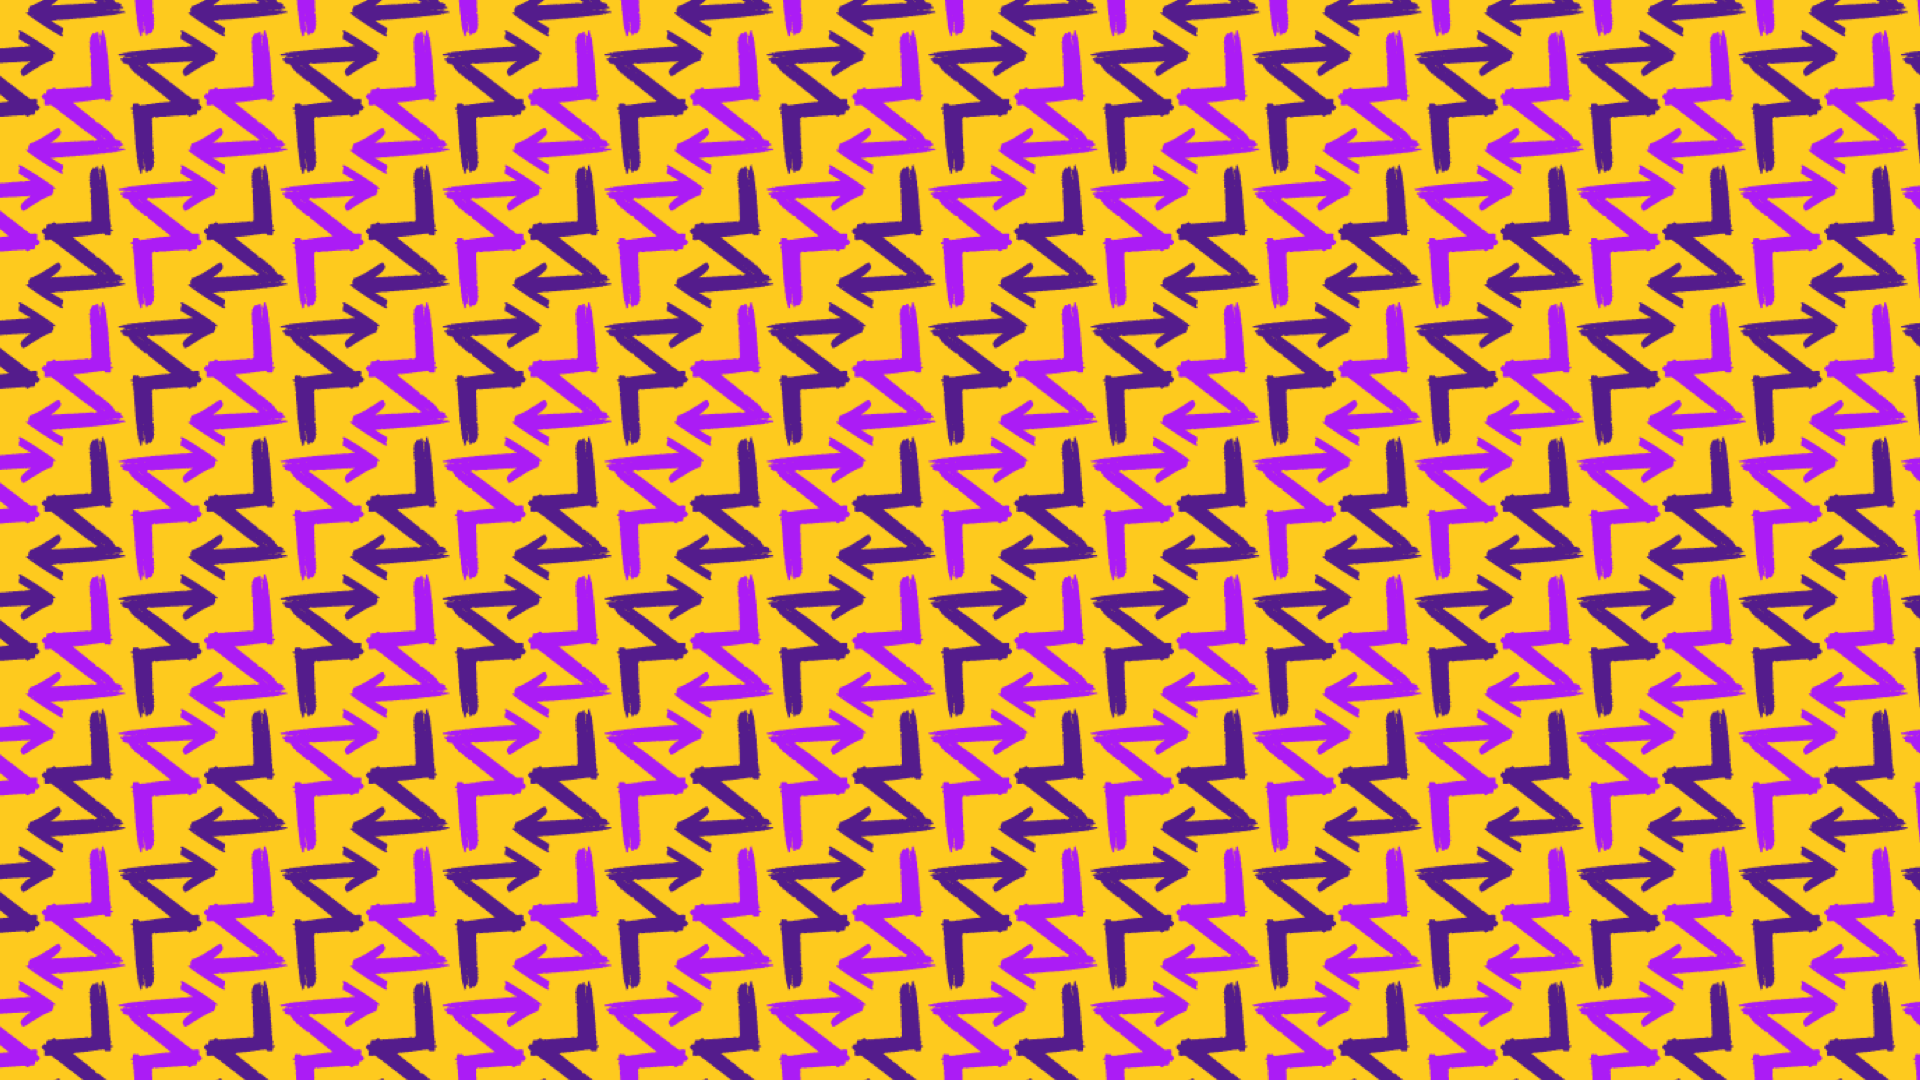 FORWARD vibrant yellow and purple pattern sample